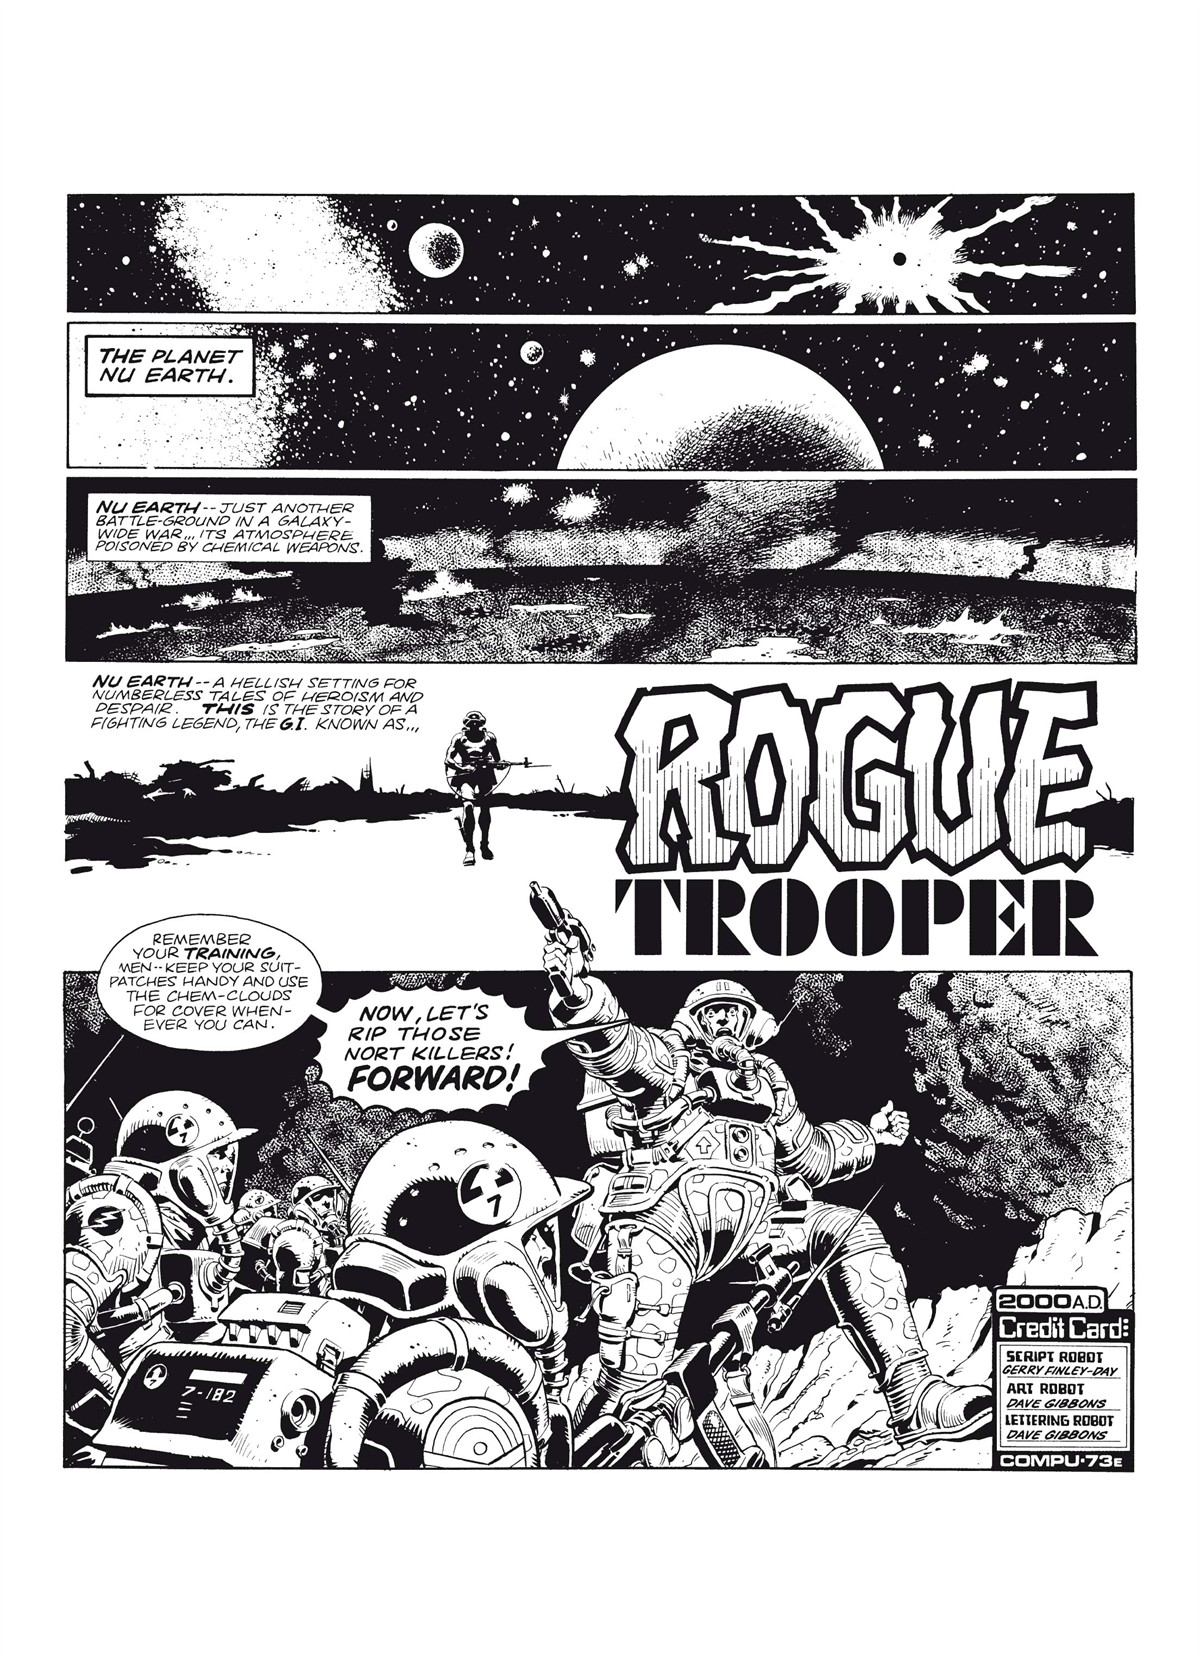 Rogue-trooper-tales-of-nu-earth-1-9781907992704.in02